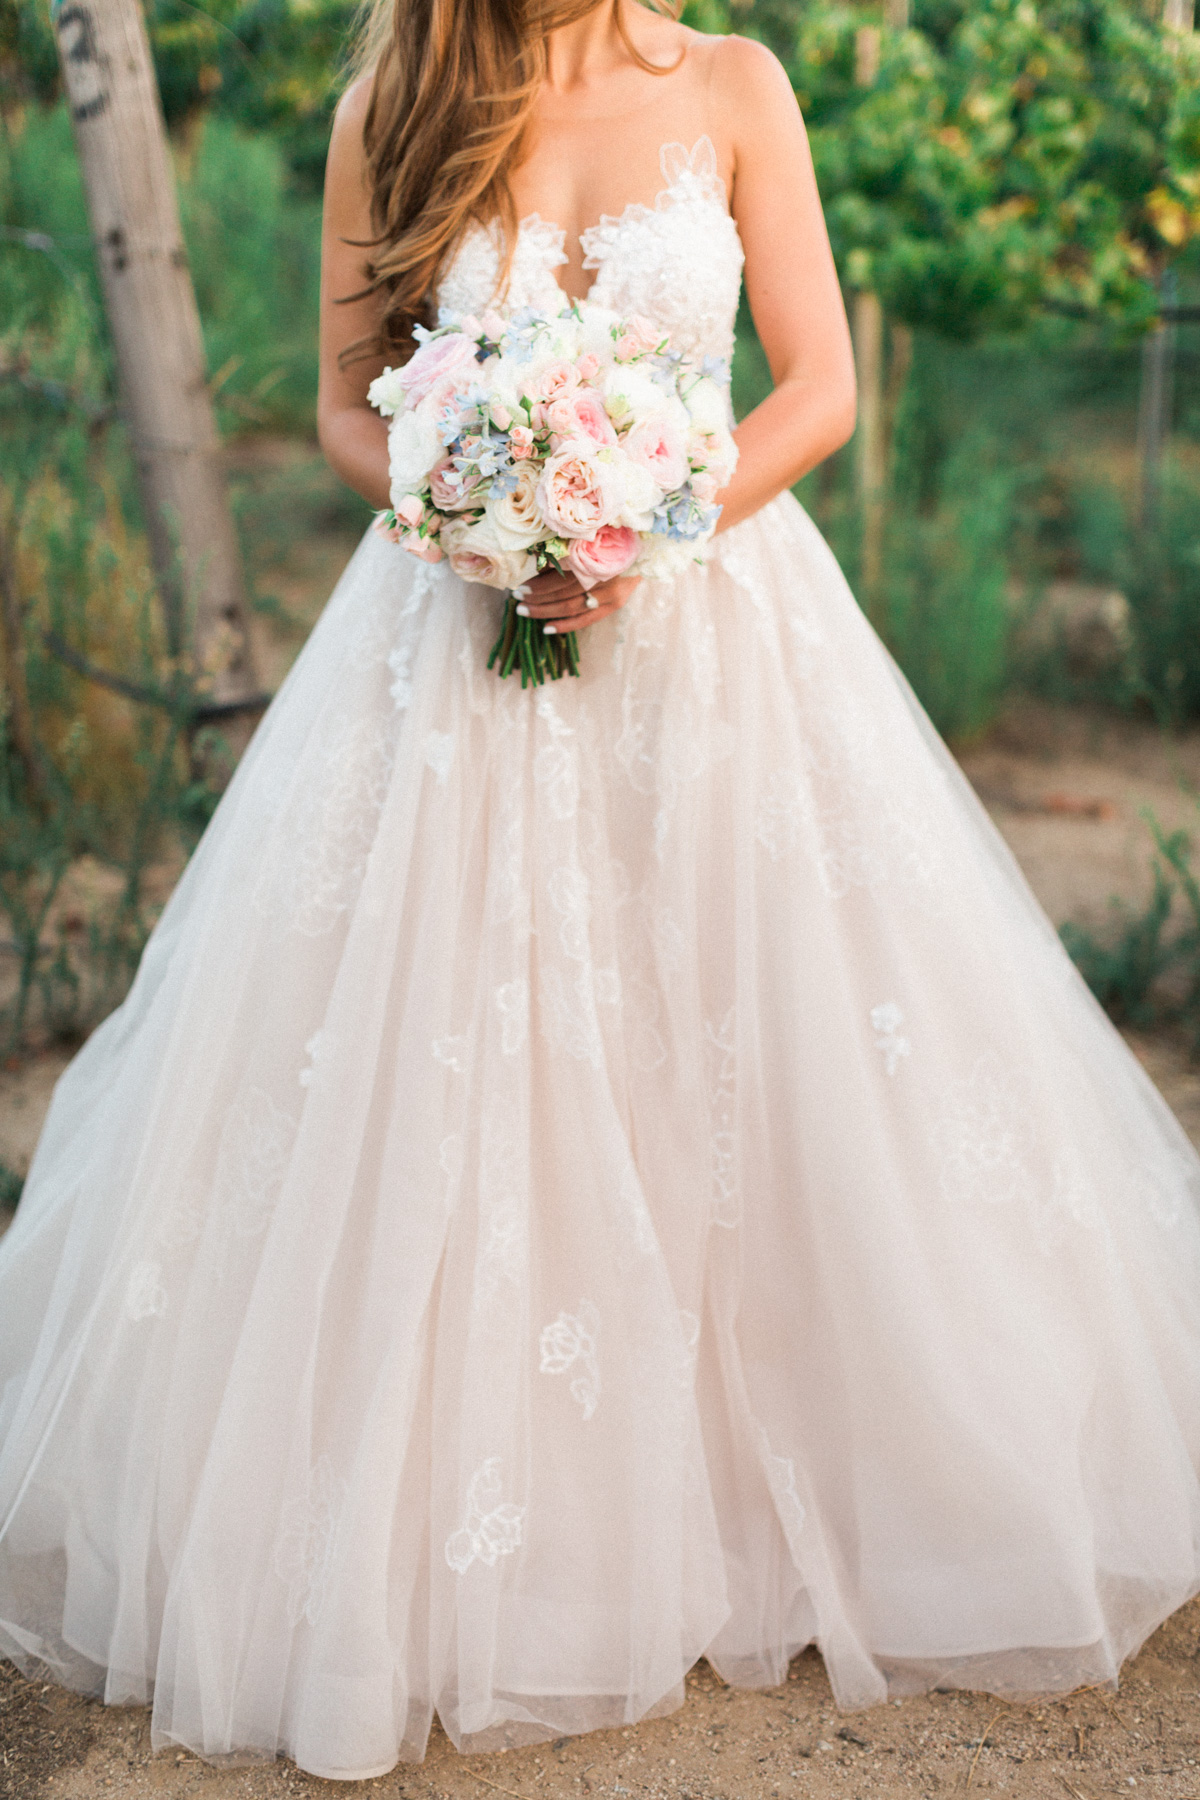 Gorgeous blush wedding gown by Essence of Australia with a blush bridal bouquet by Soiree Design & Events captured by Temecula wedding photographers Betsy & John